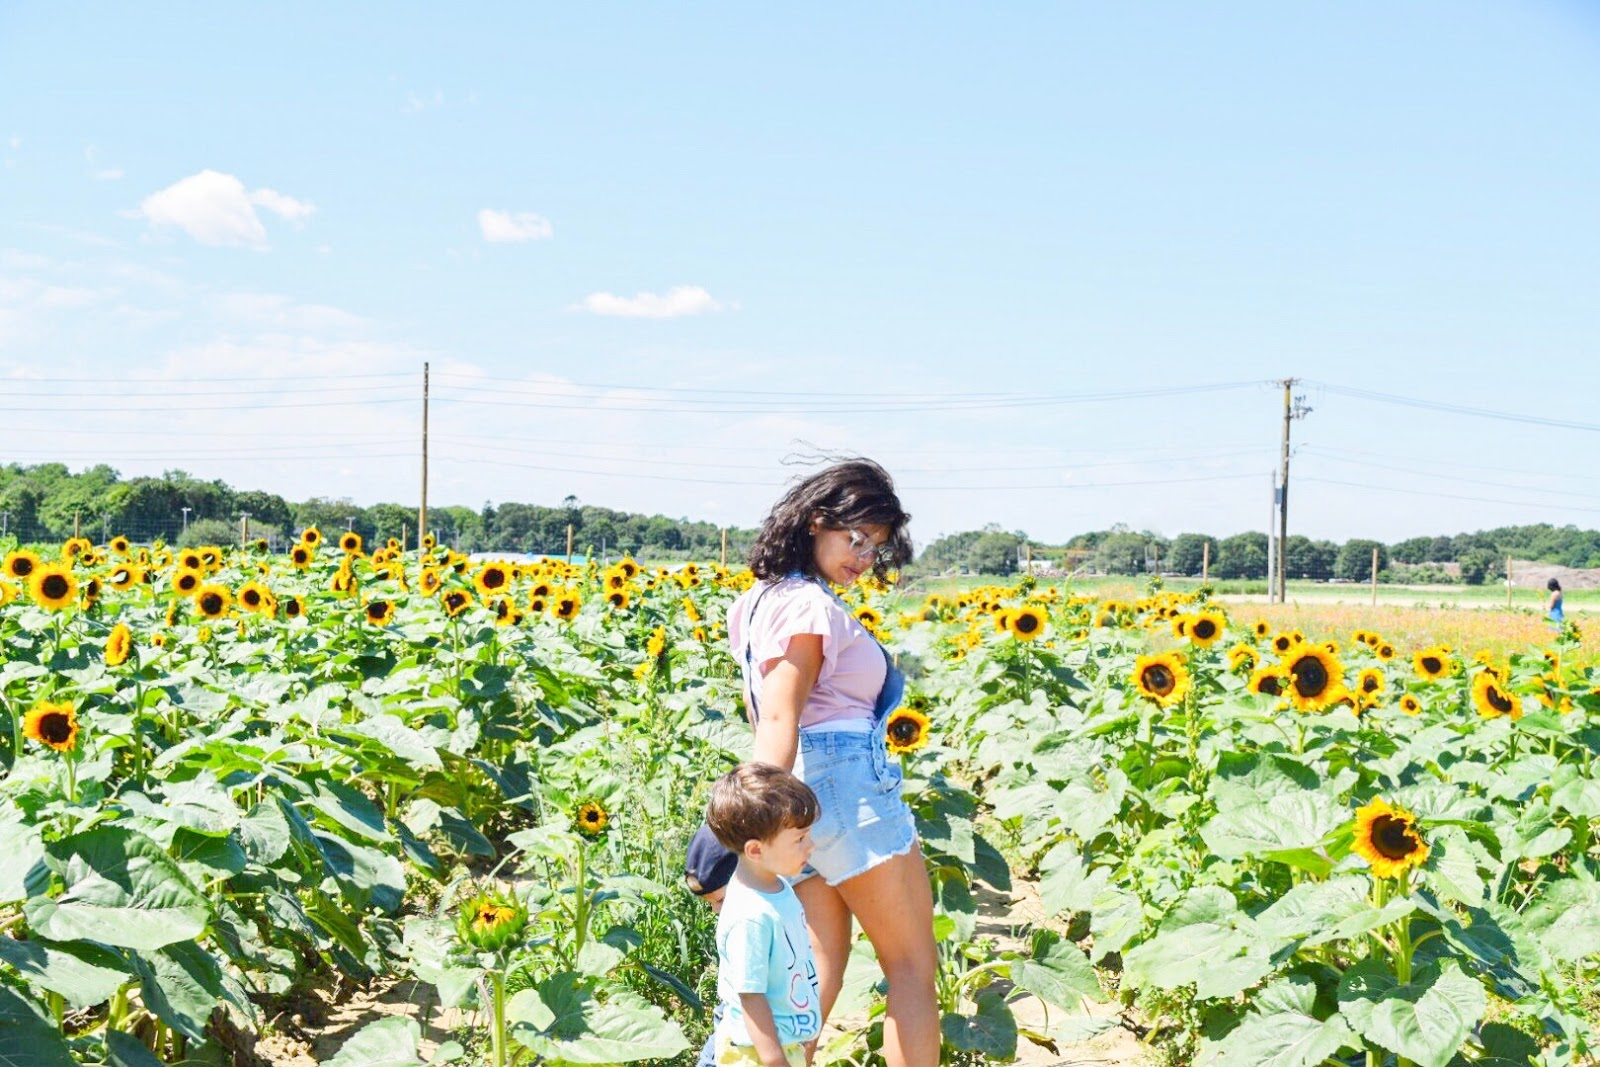 sunflowers, son, sons, mommy and me, photo session, family photos, summer 2019, summer, sunflowers near me, summer flowers, mommy blogger, best mom blog, best mom blogs